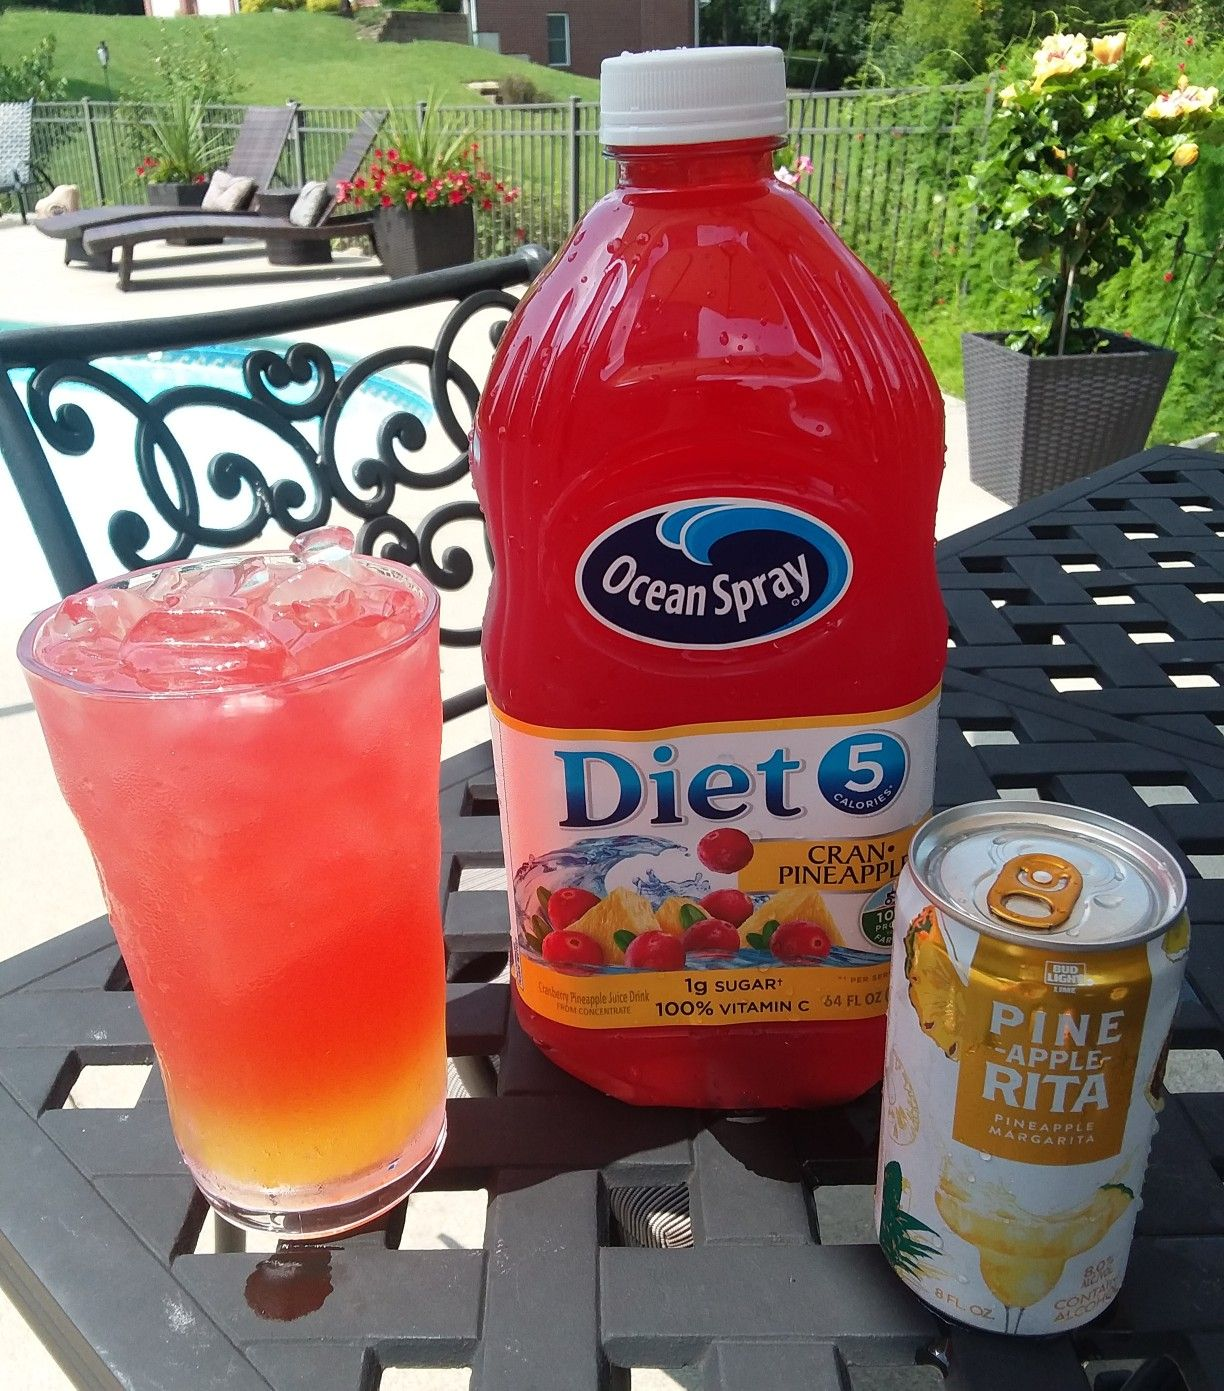 Pin By Amanda Perkins On Food Alcohol Drink Recipes Drinks Drinks Alcohol Recipes